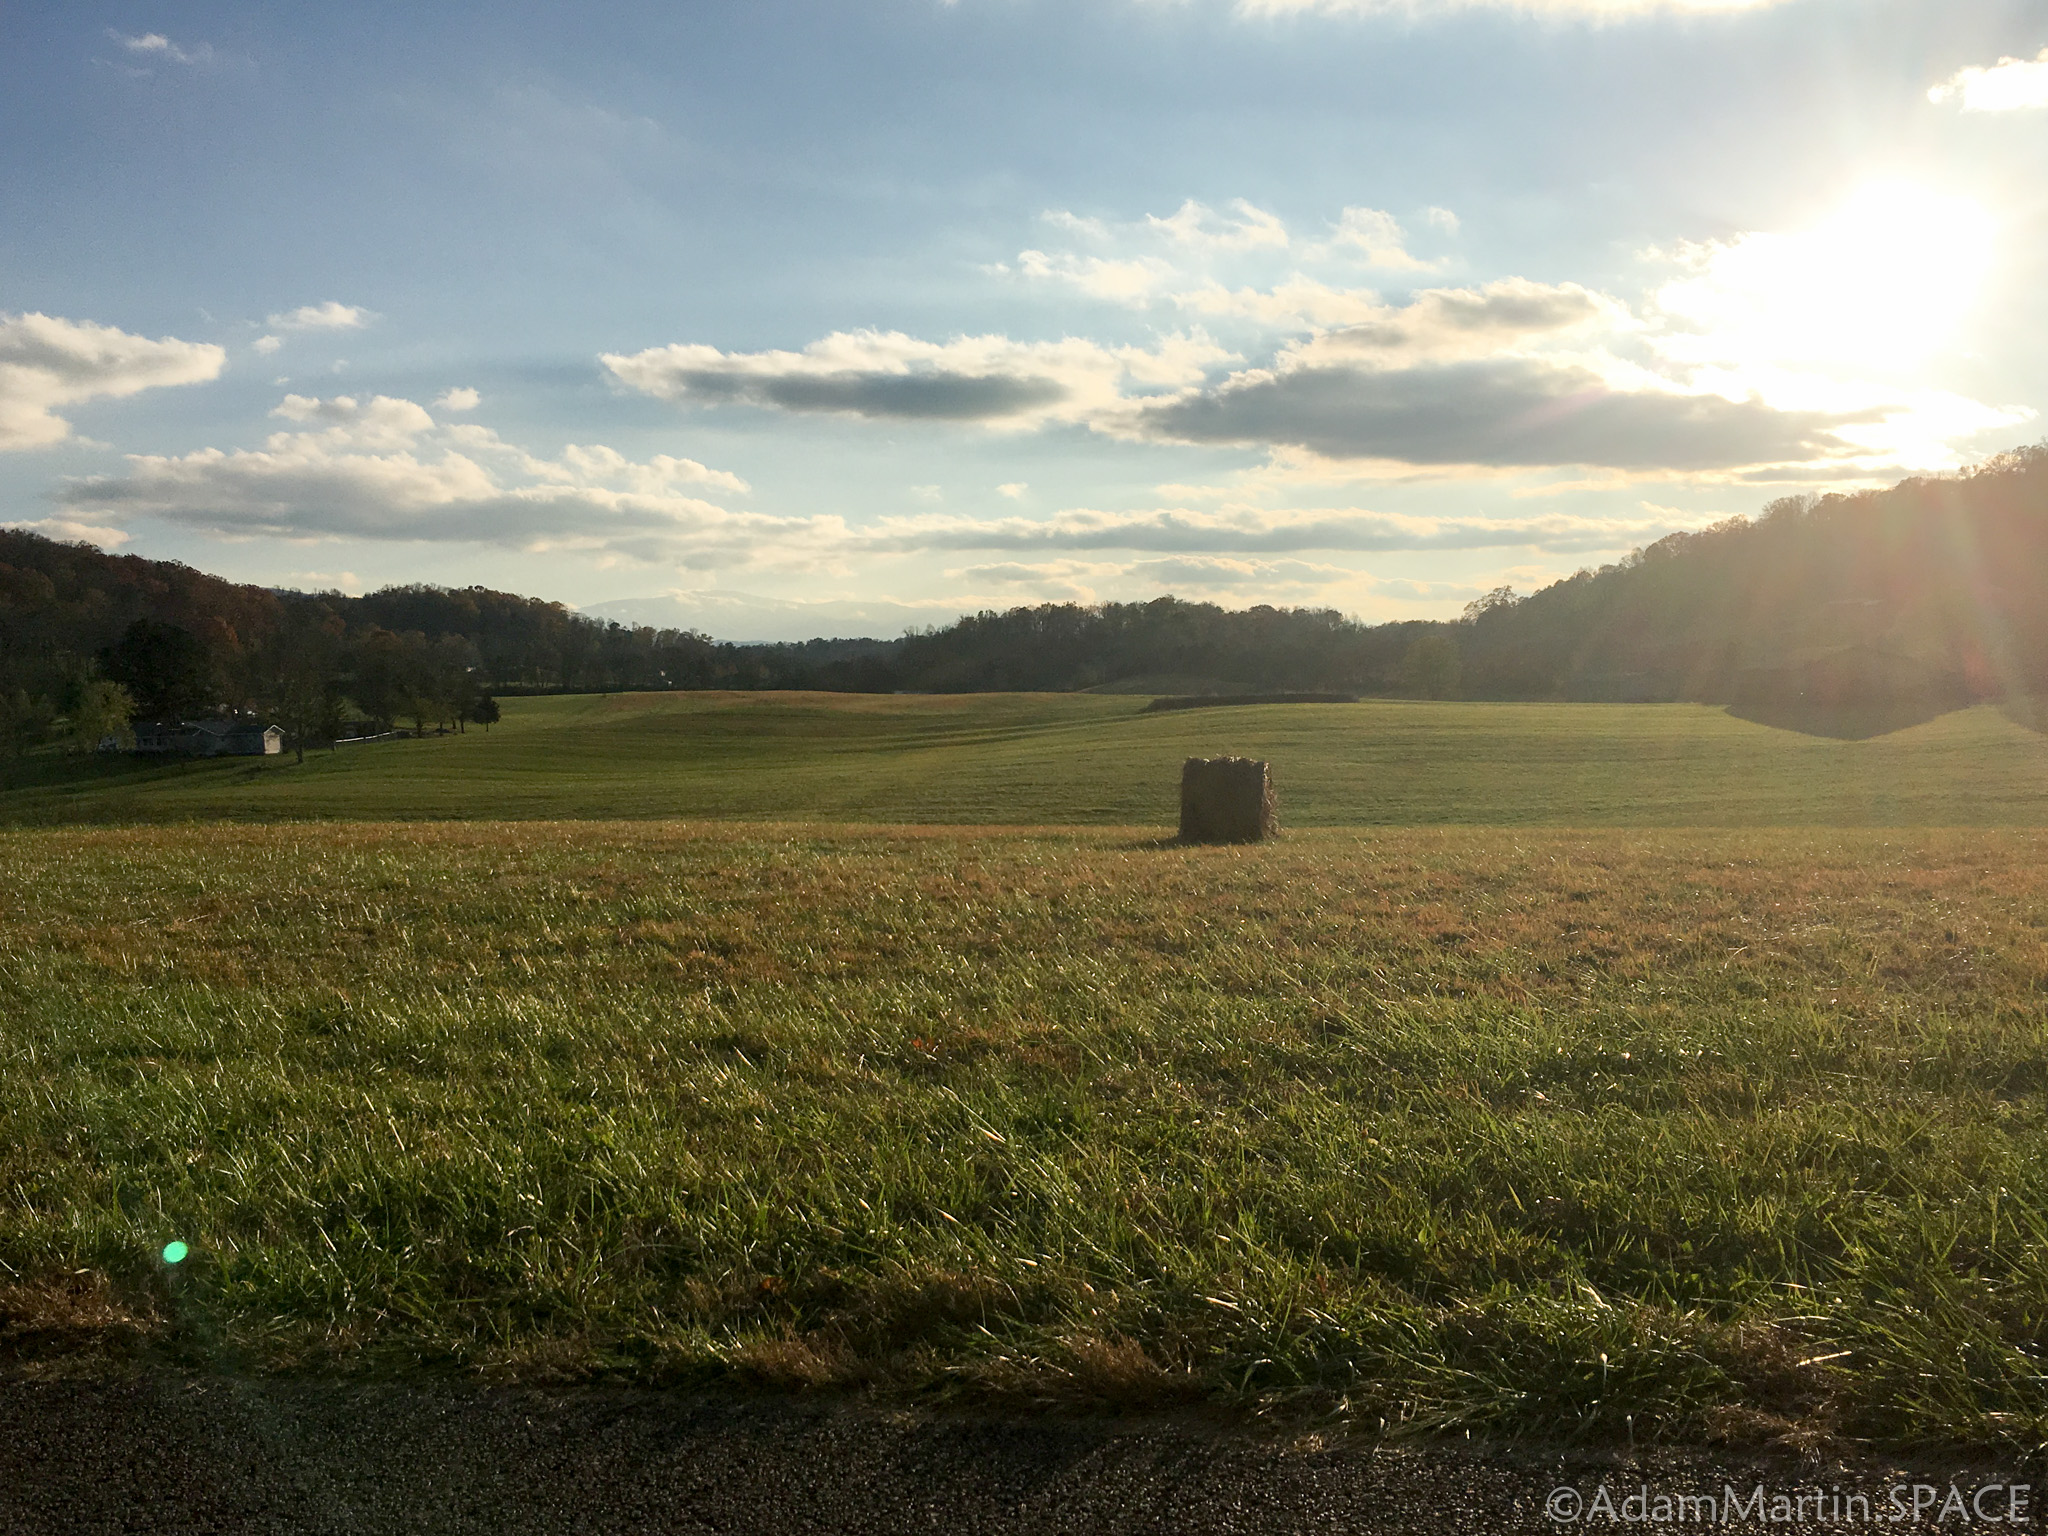 Newport, TN - Sunny views across a field